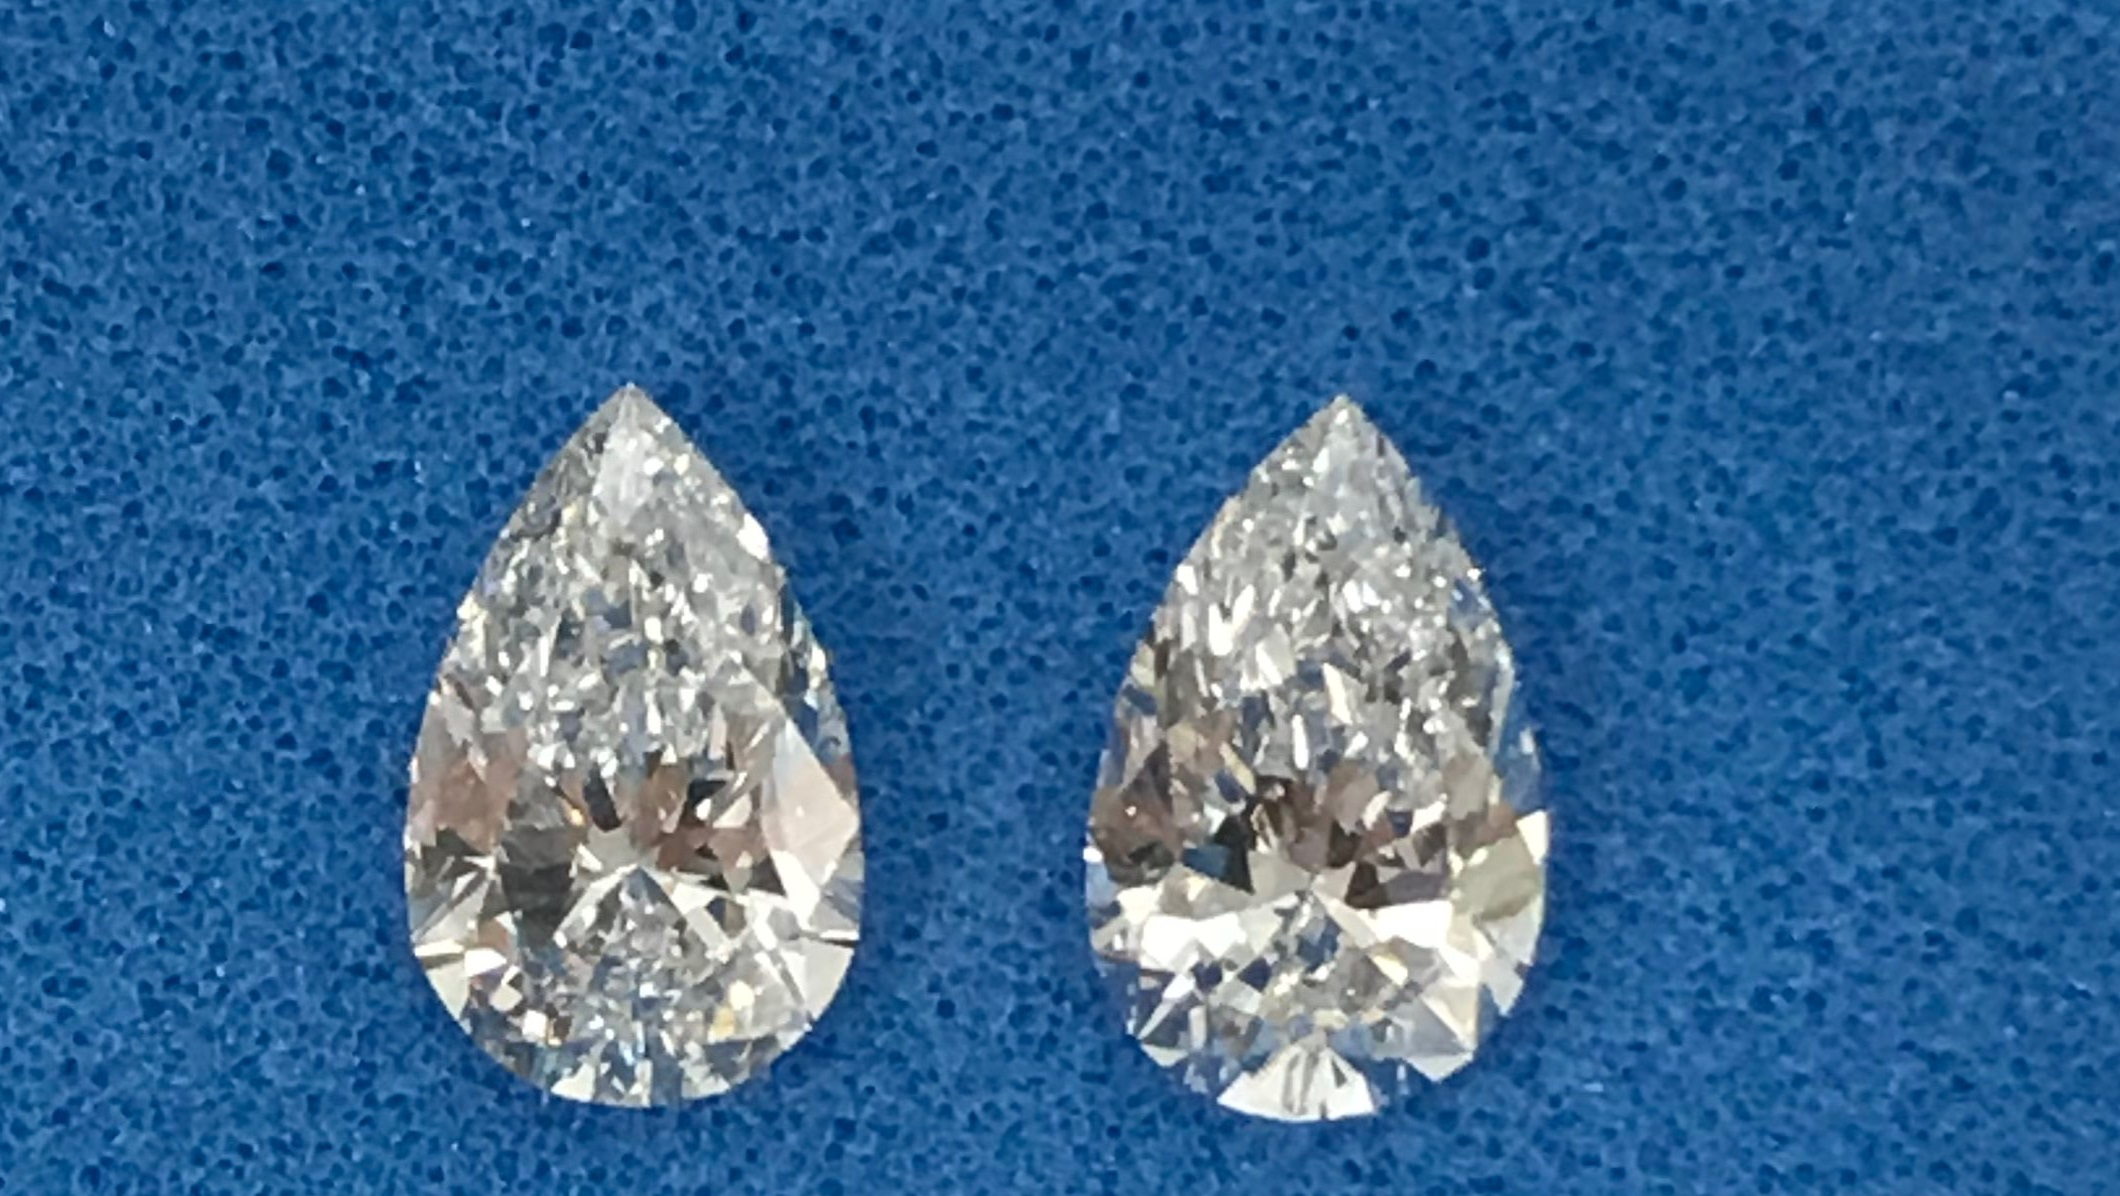 Gumer & Co Jewelry - Diamond Image - .00938